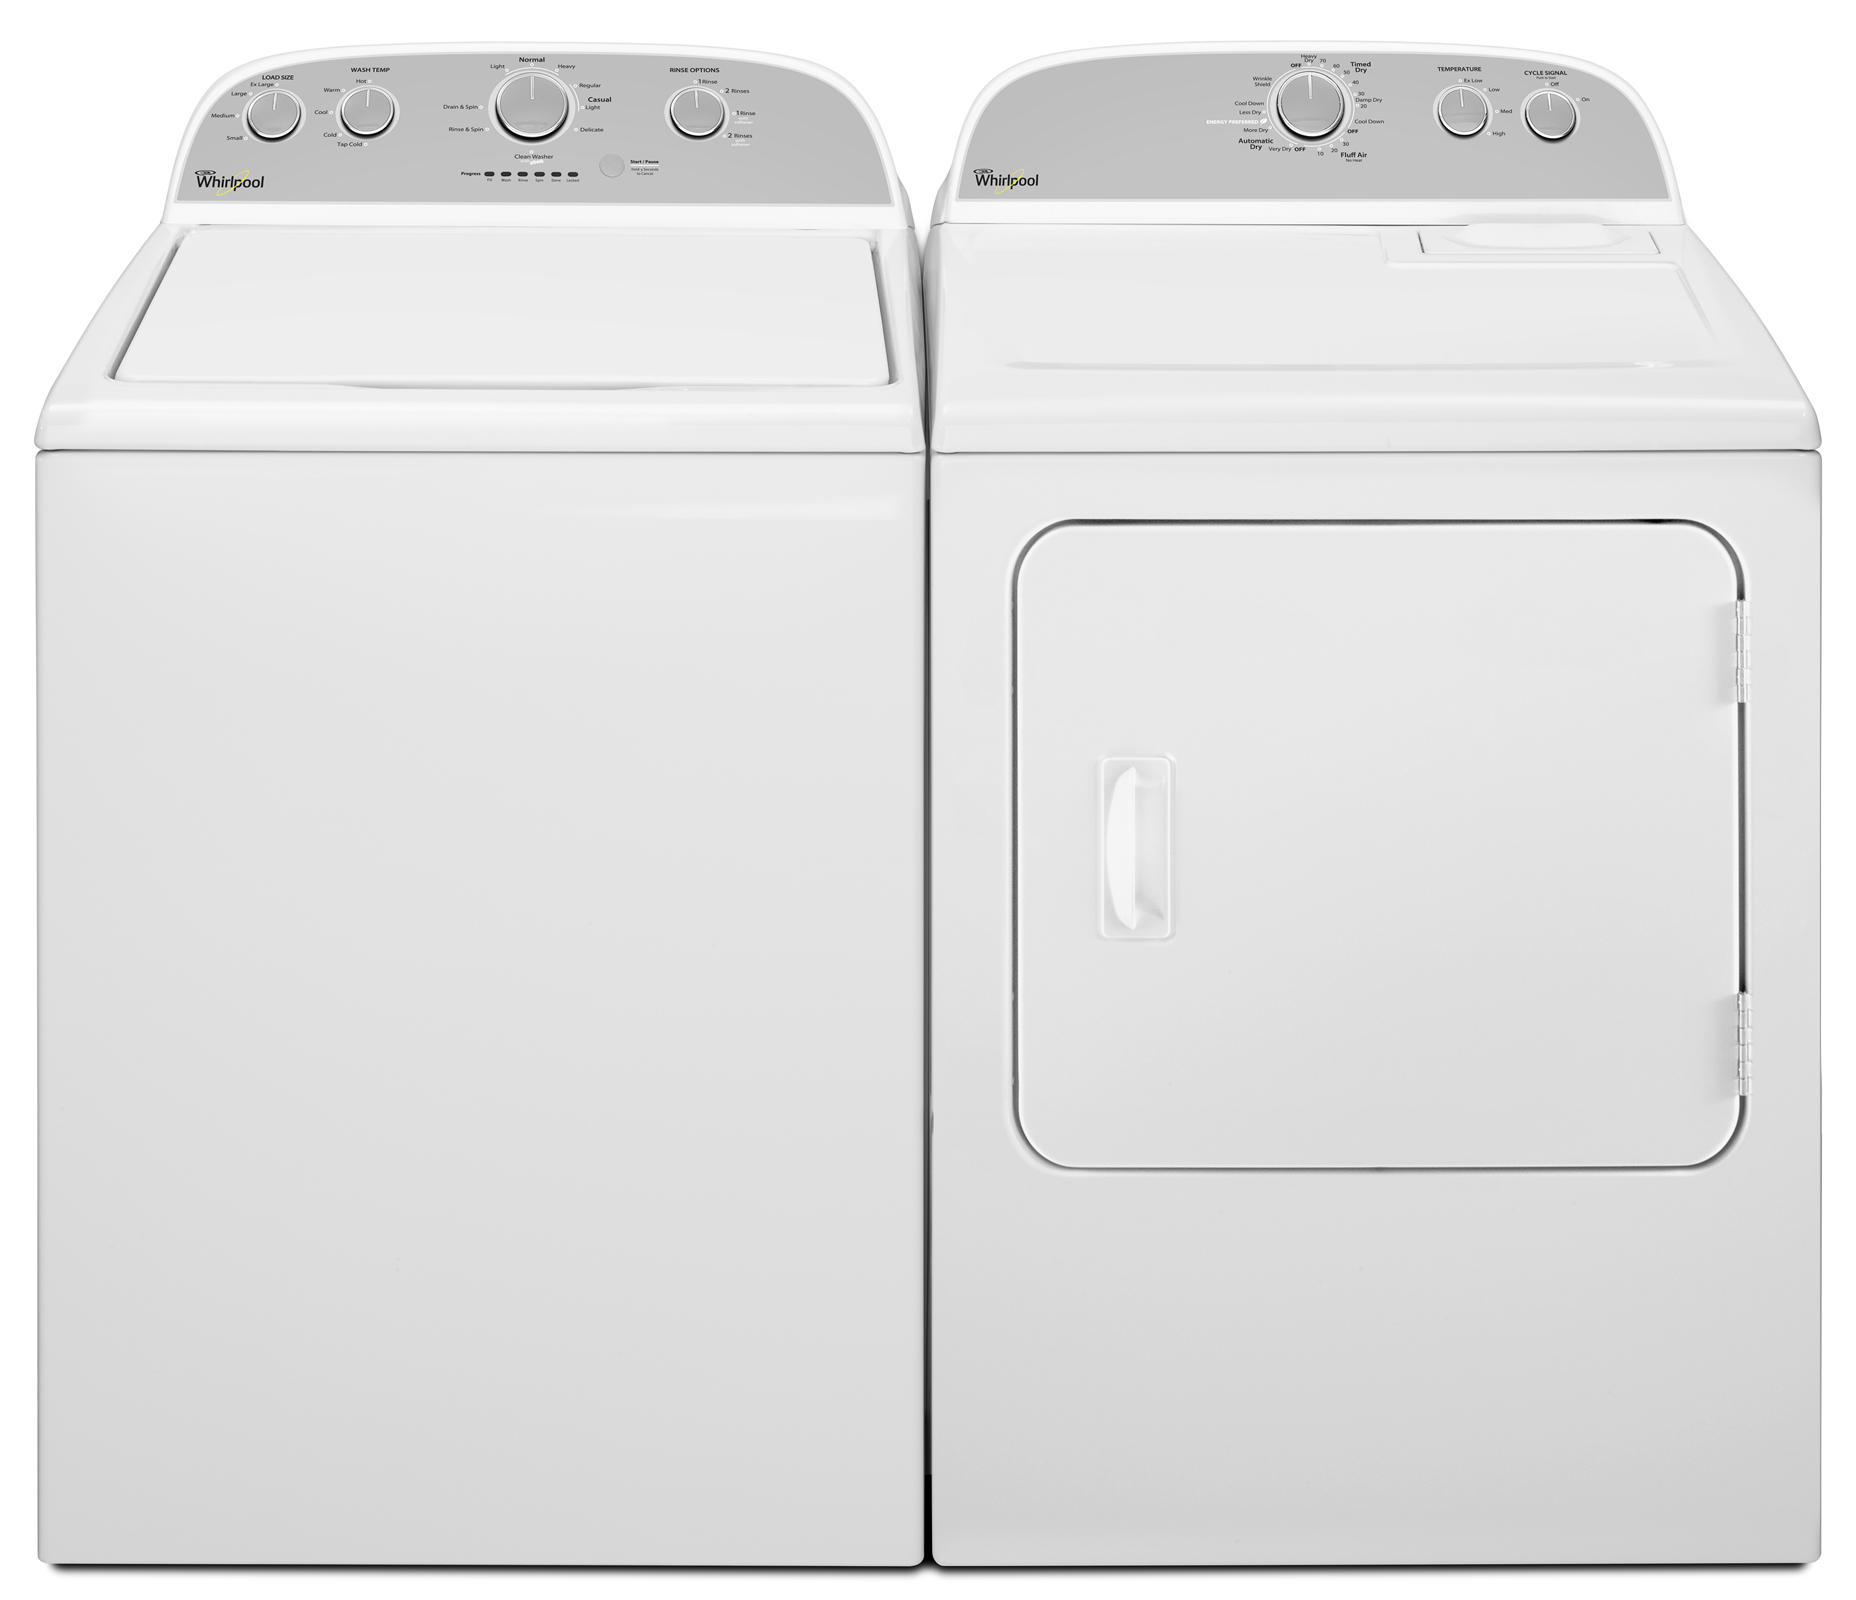 Whirlpool 7.0 cu. ft. Electric Dryer w/ Energy Preferred Setting - White